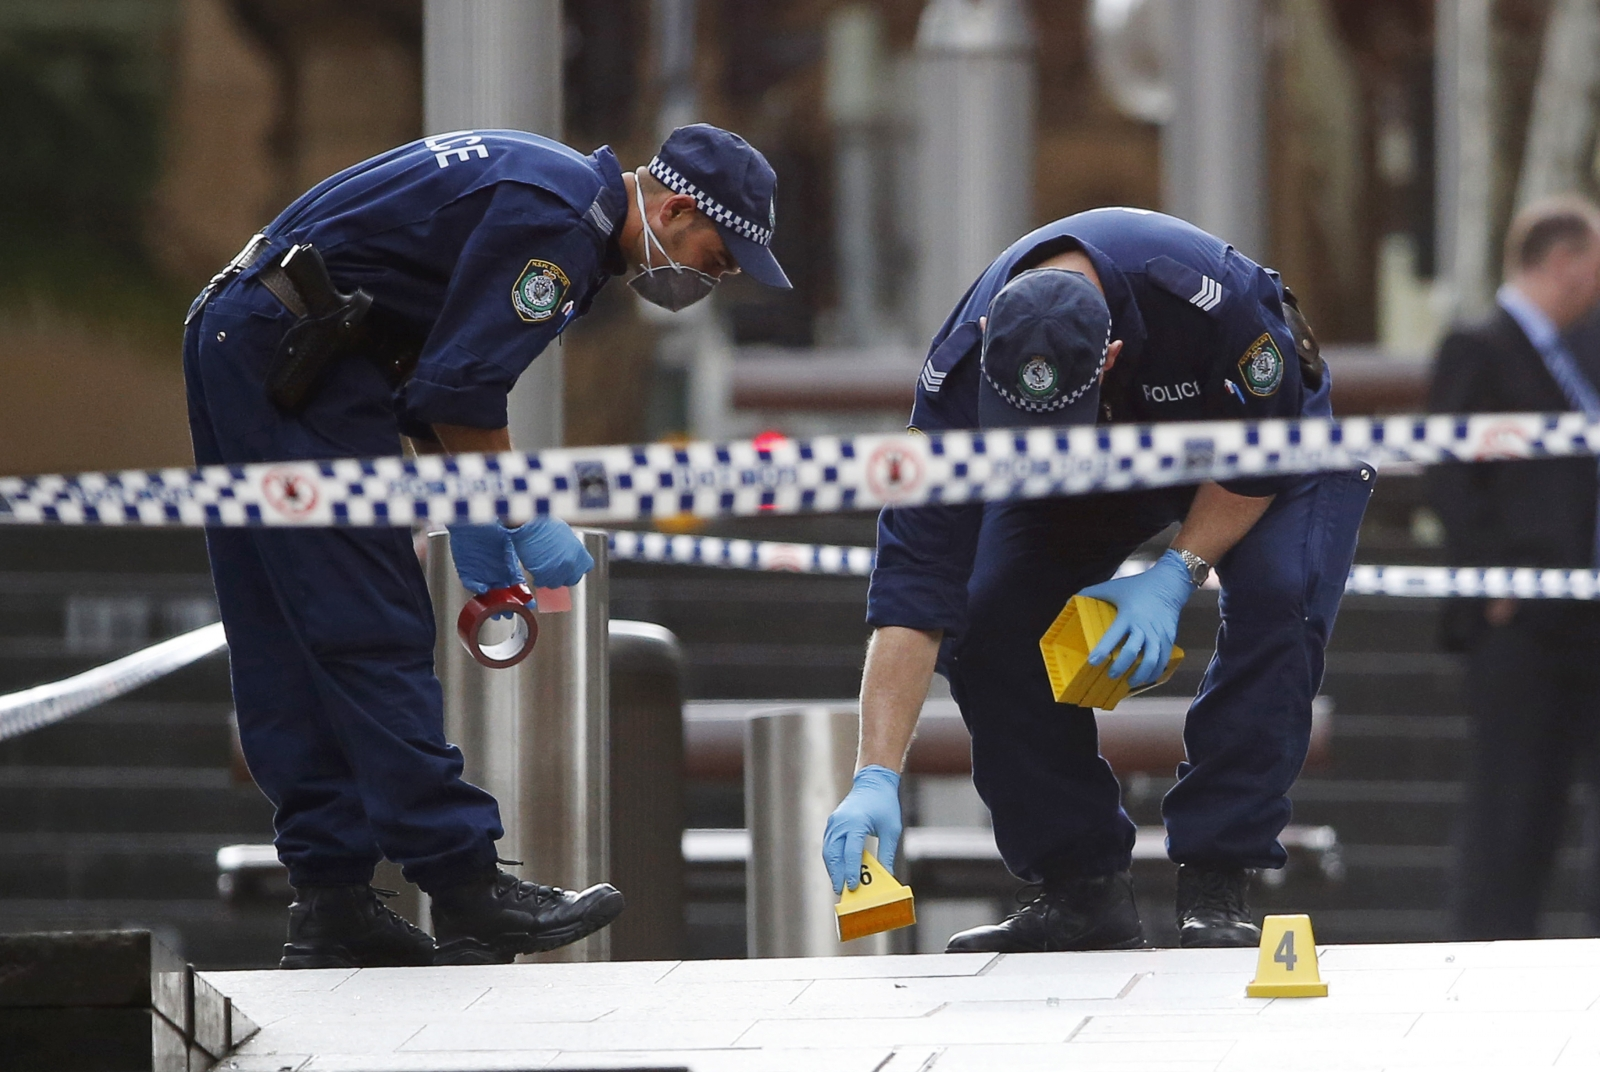 Trio to face court over NSW shooting